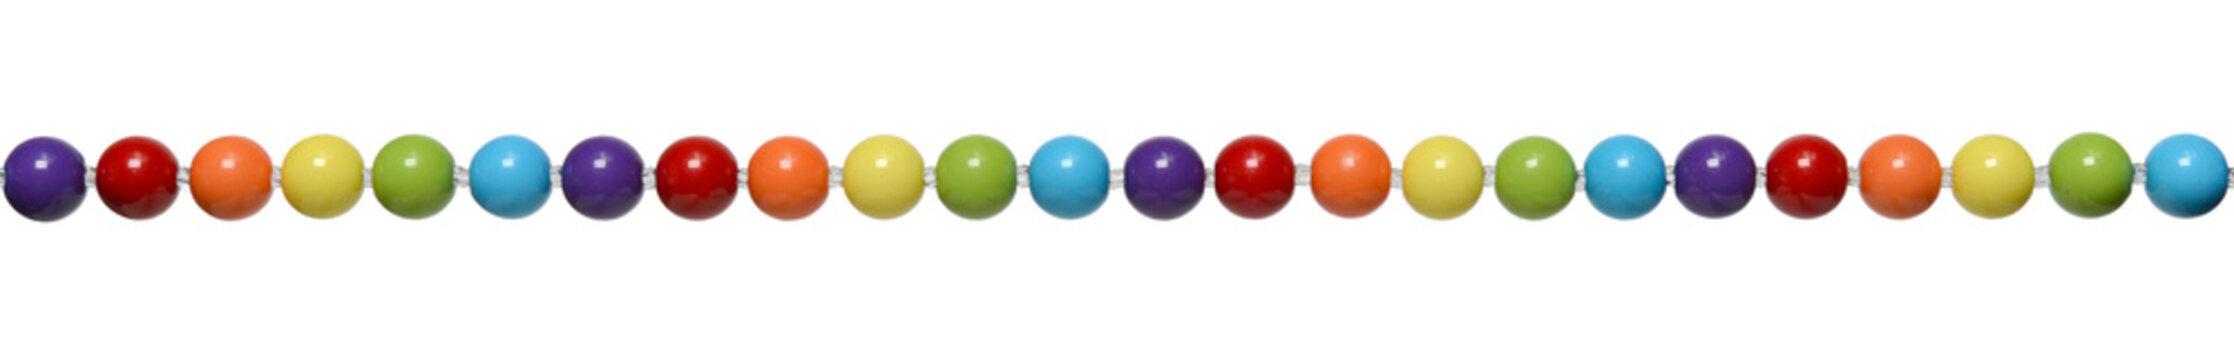 Colored bead isolated